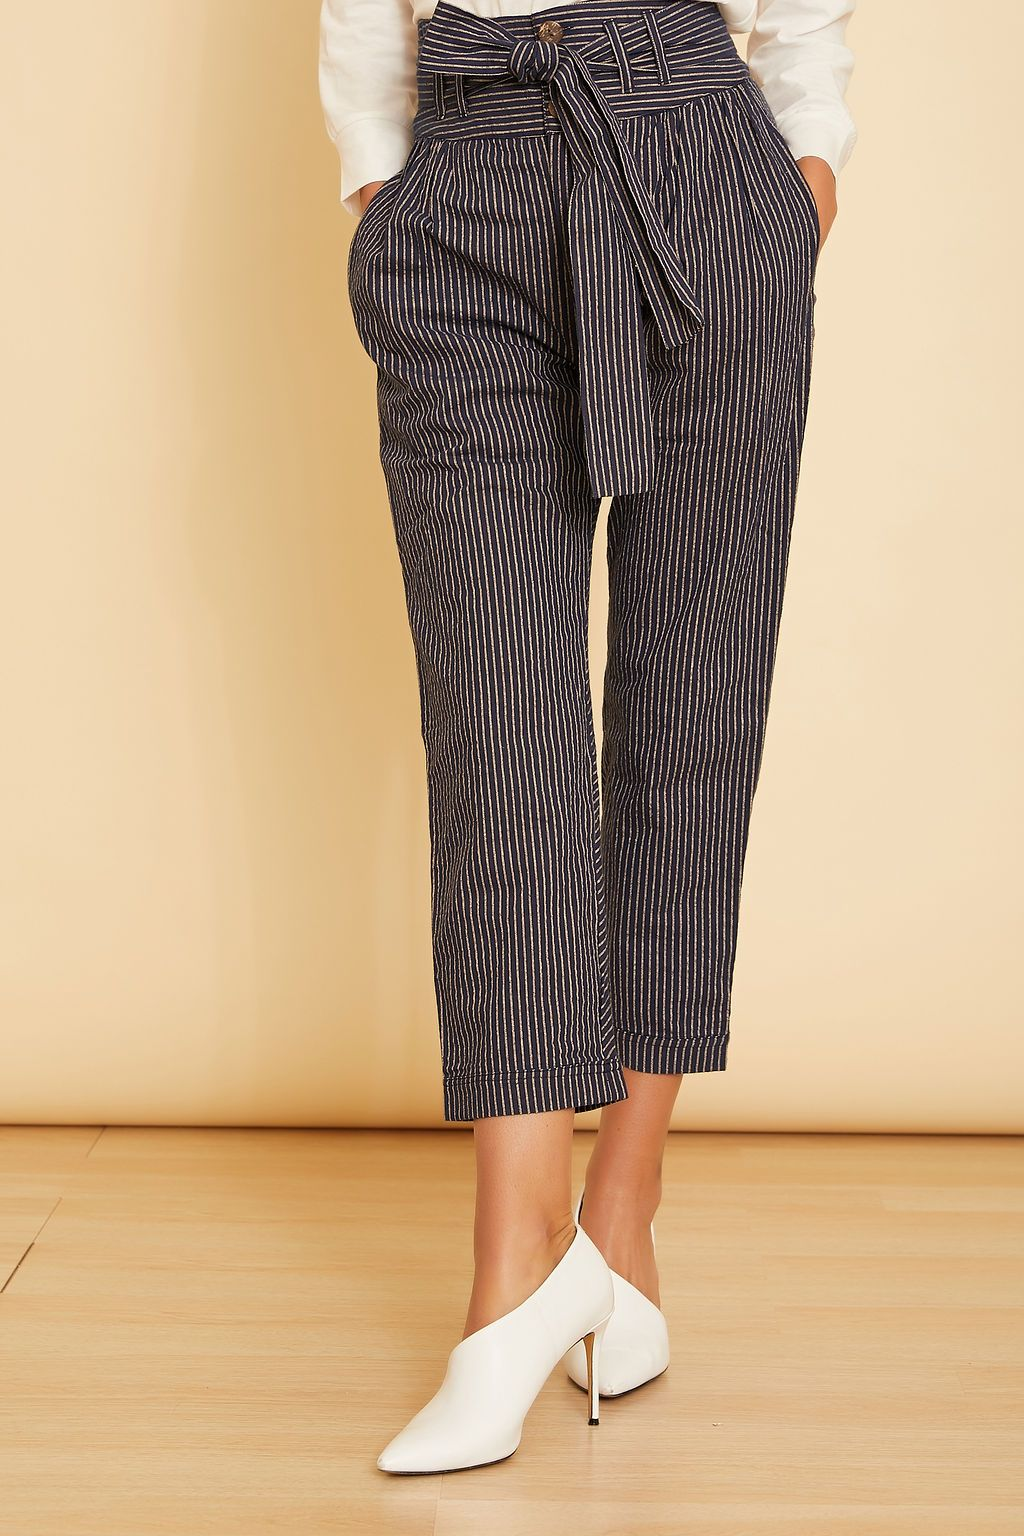 Tory Striped Pants - wearNYLA